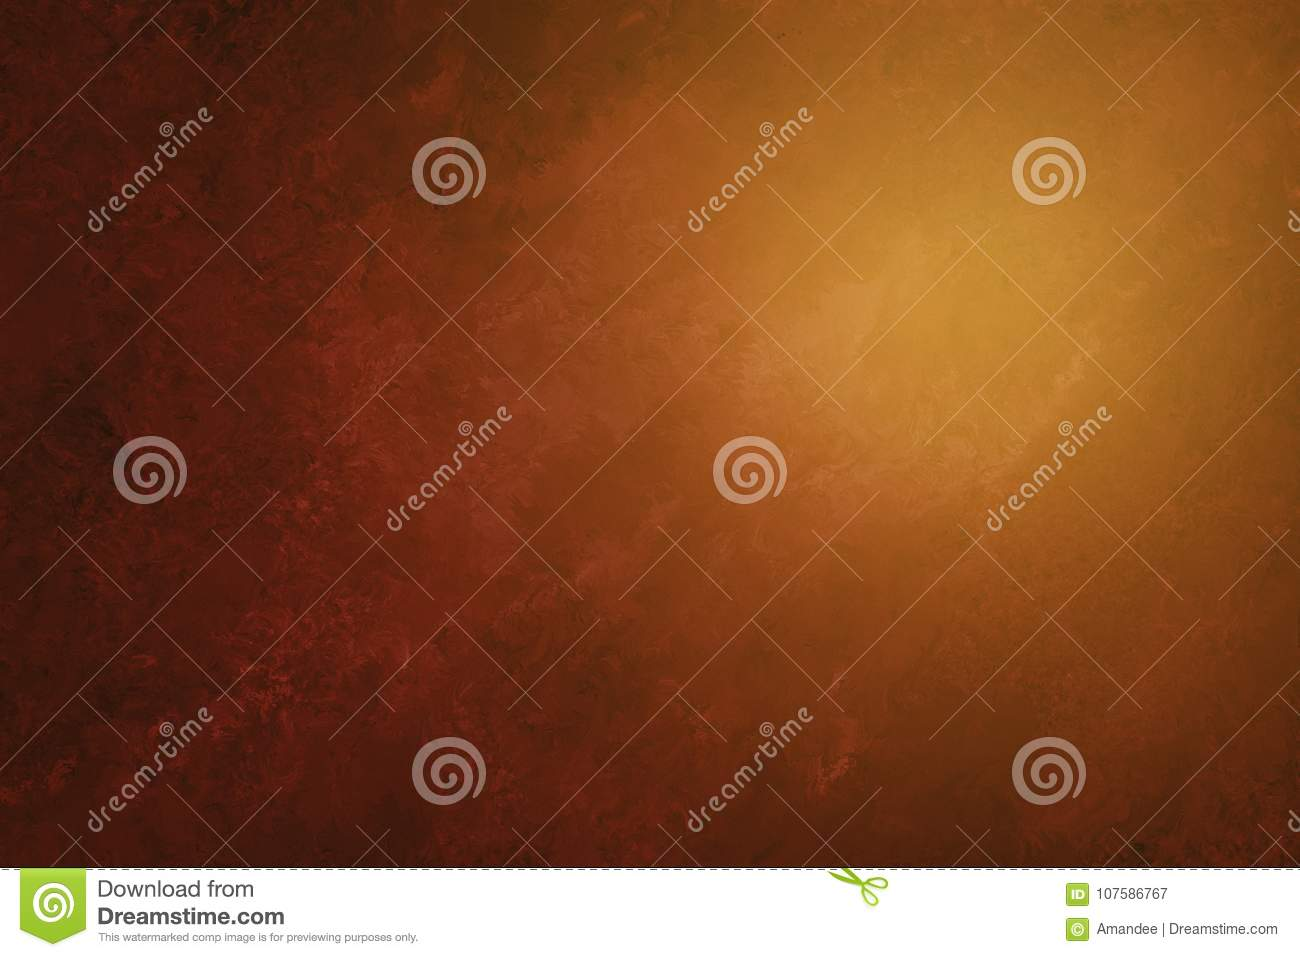 Luxury brown orange and black background with painted abstract marble texture in elegant design, soft sunlight or sunshine f